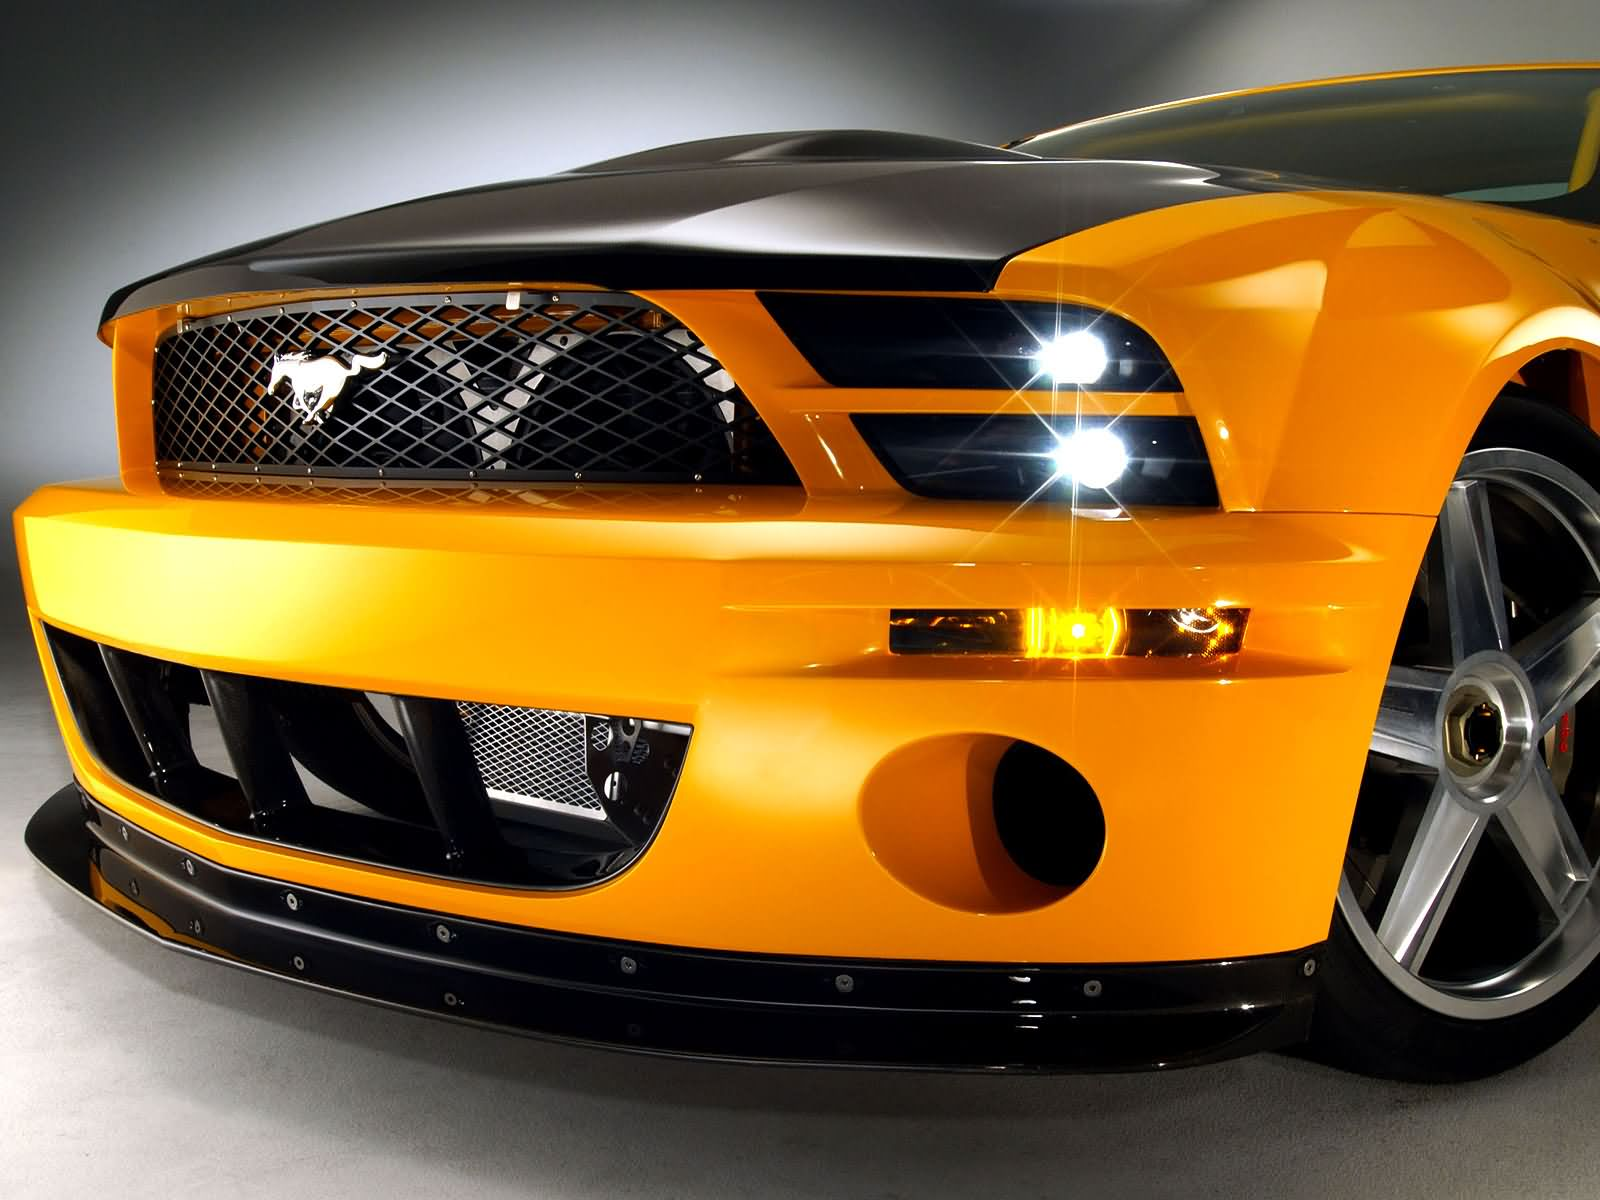 world of cars ford mustang information and review. Black Bedroom Furniture Sets. Home Design Ideas